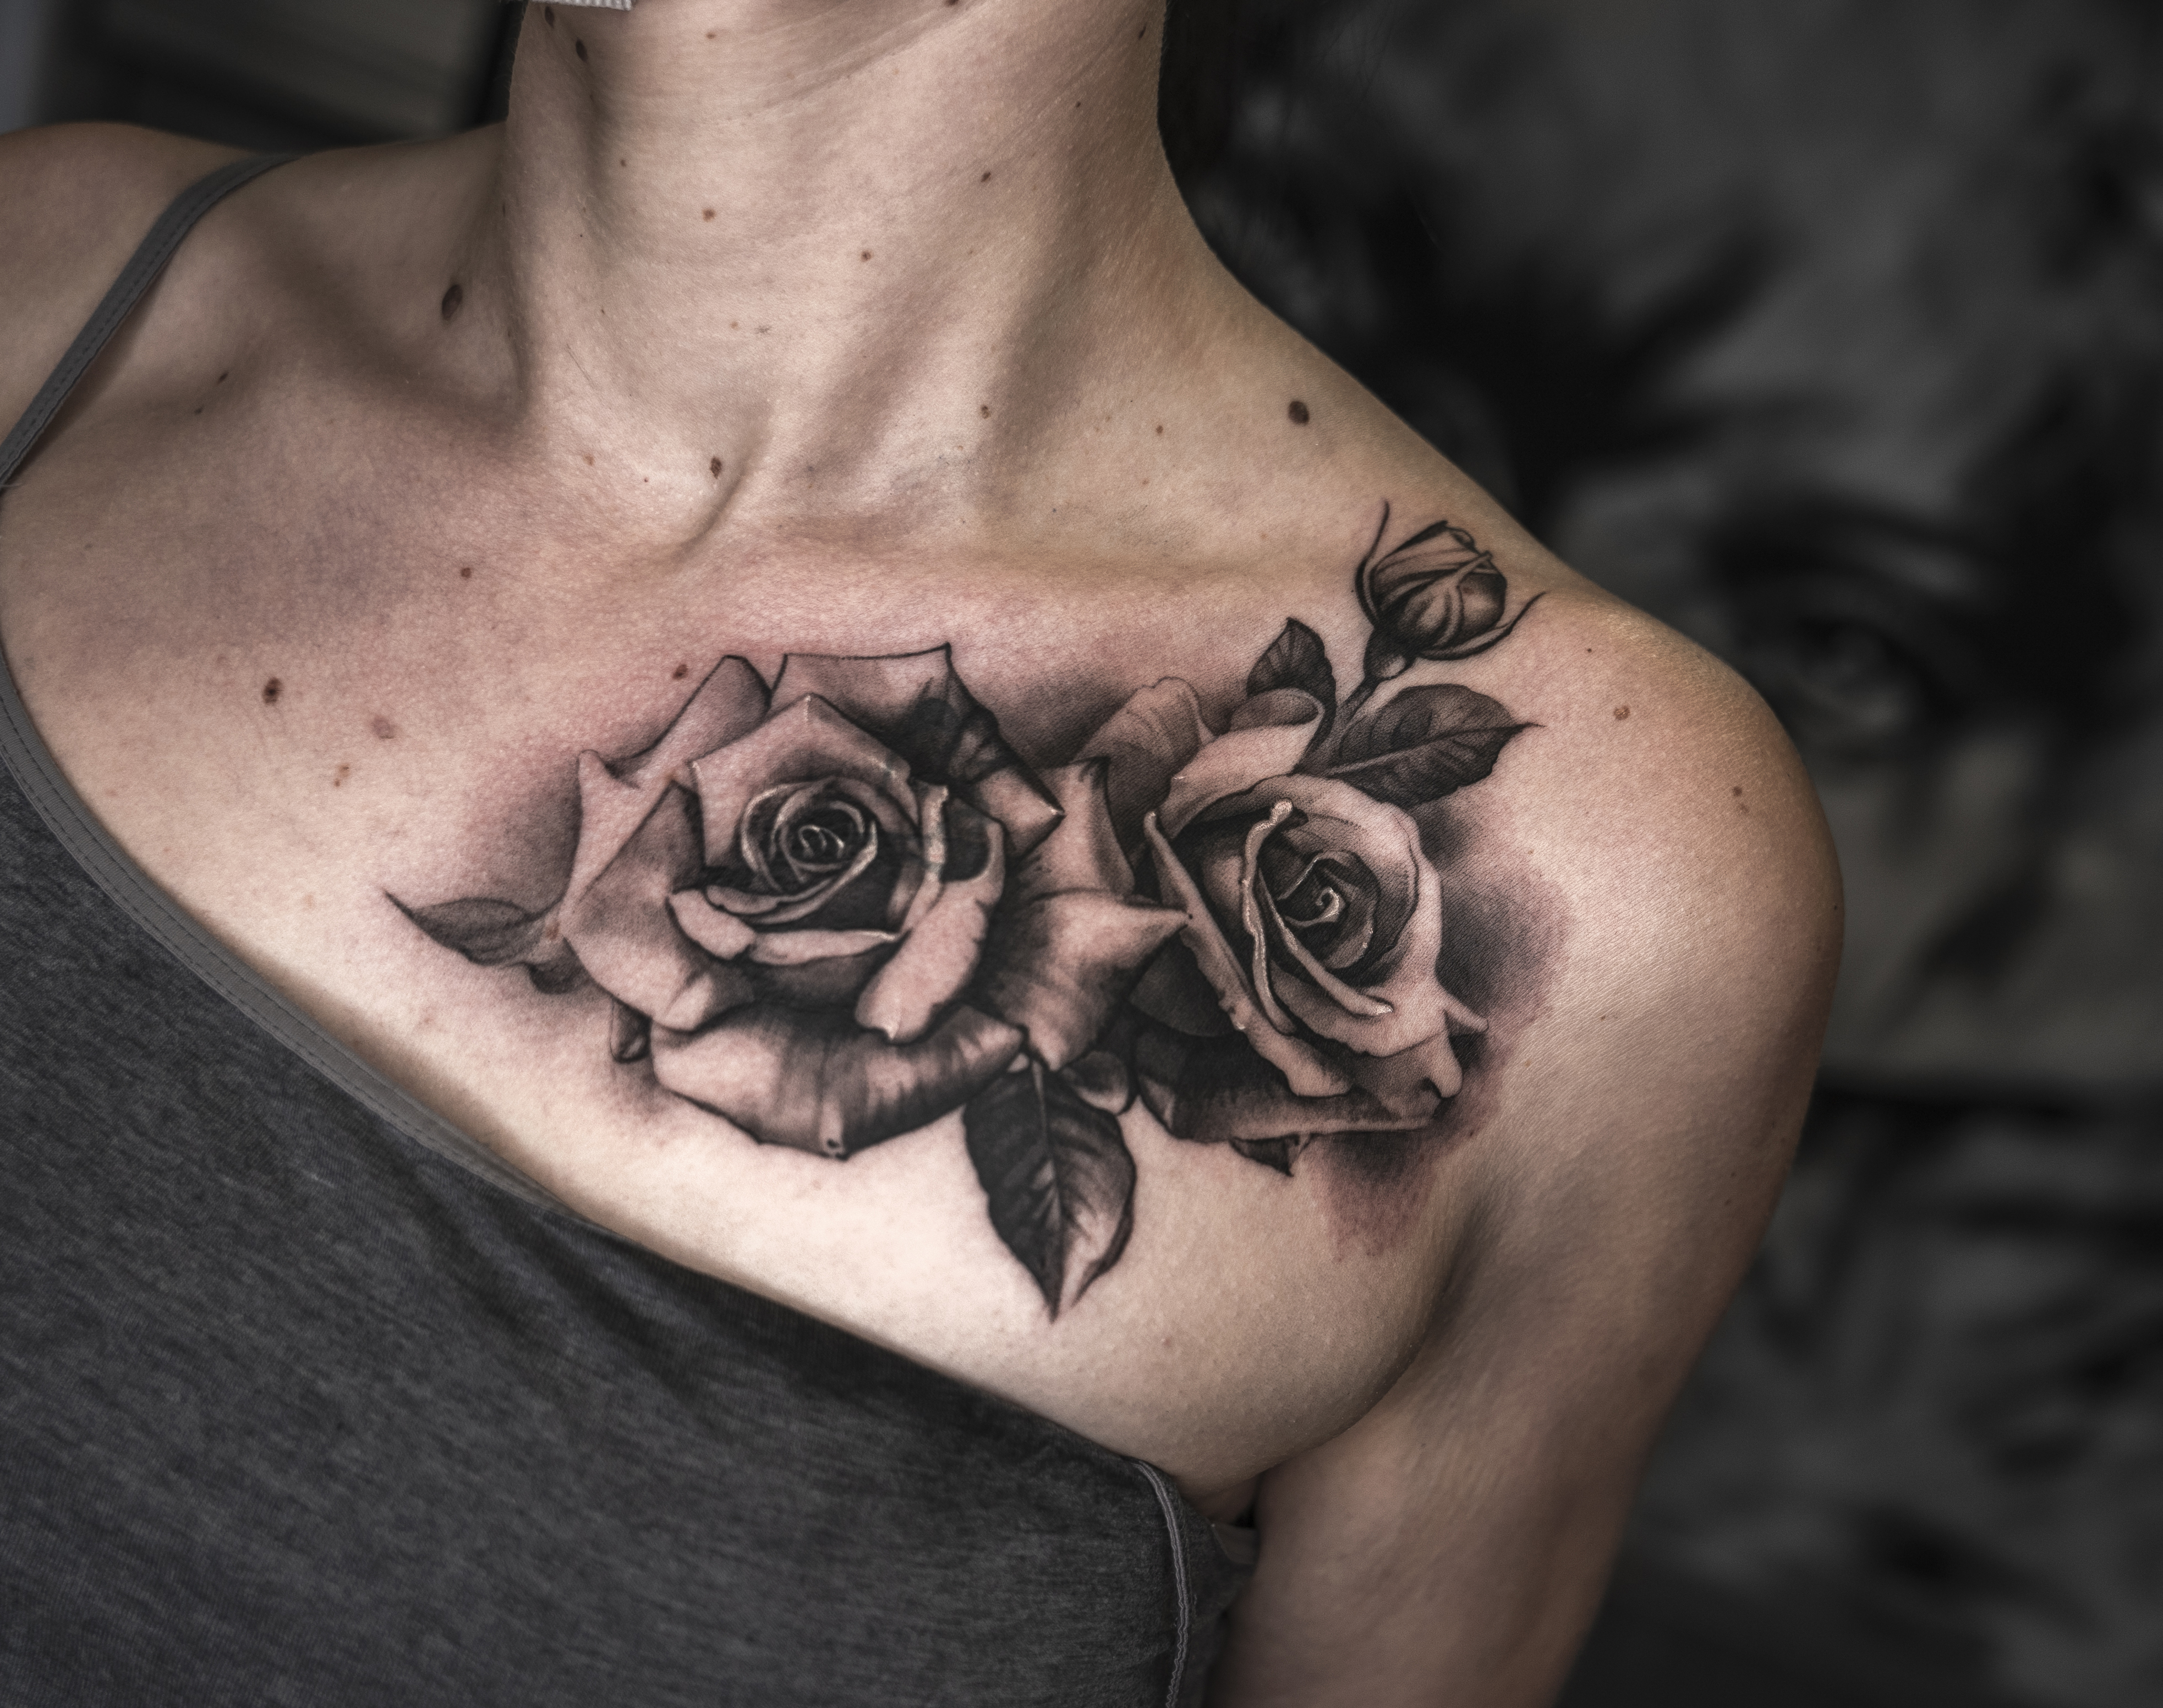 Roses to cover up old tattoo, done in kitzingen at limpid tattoo art